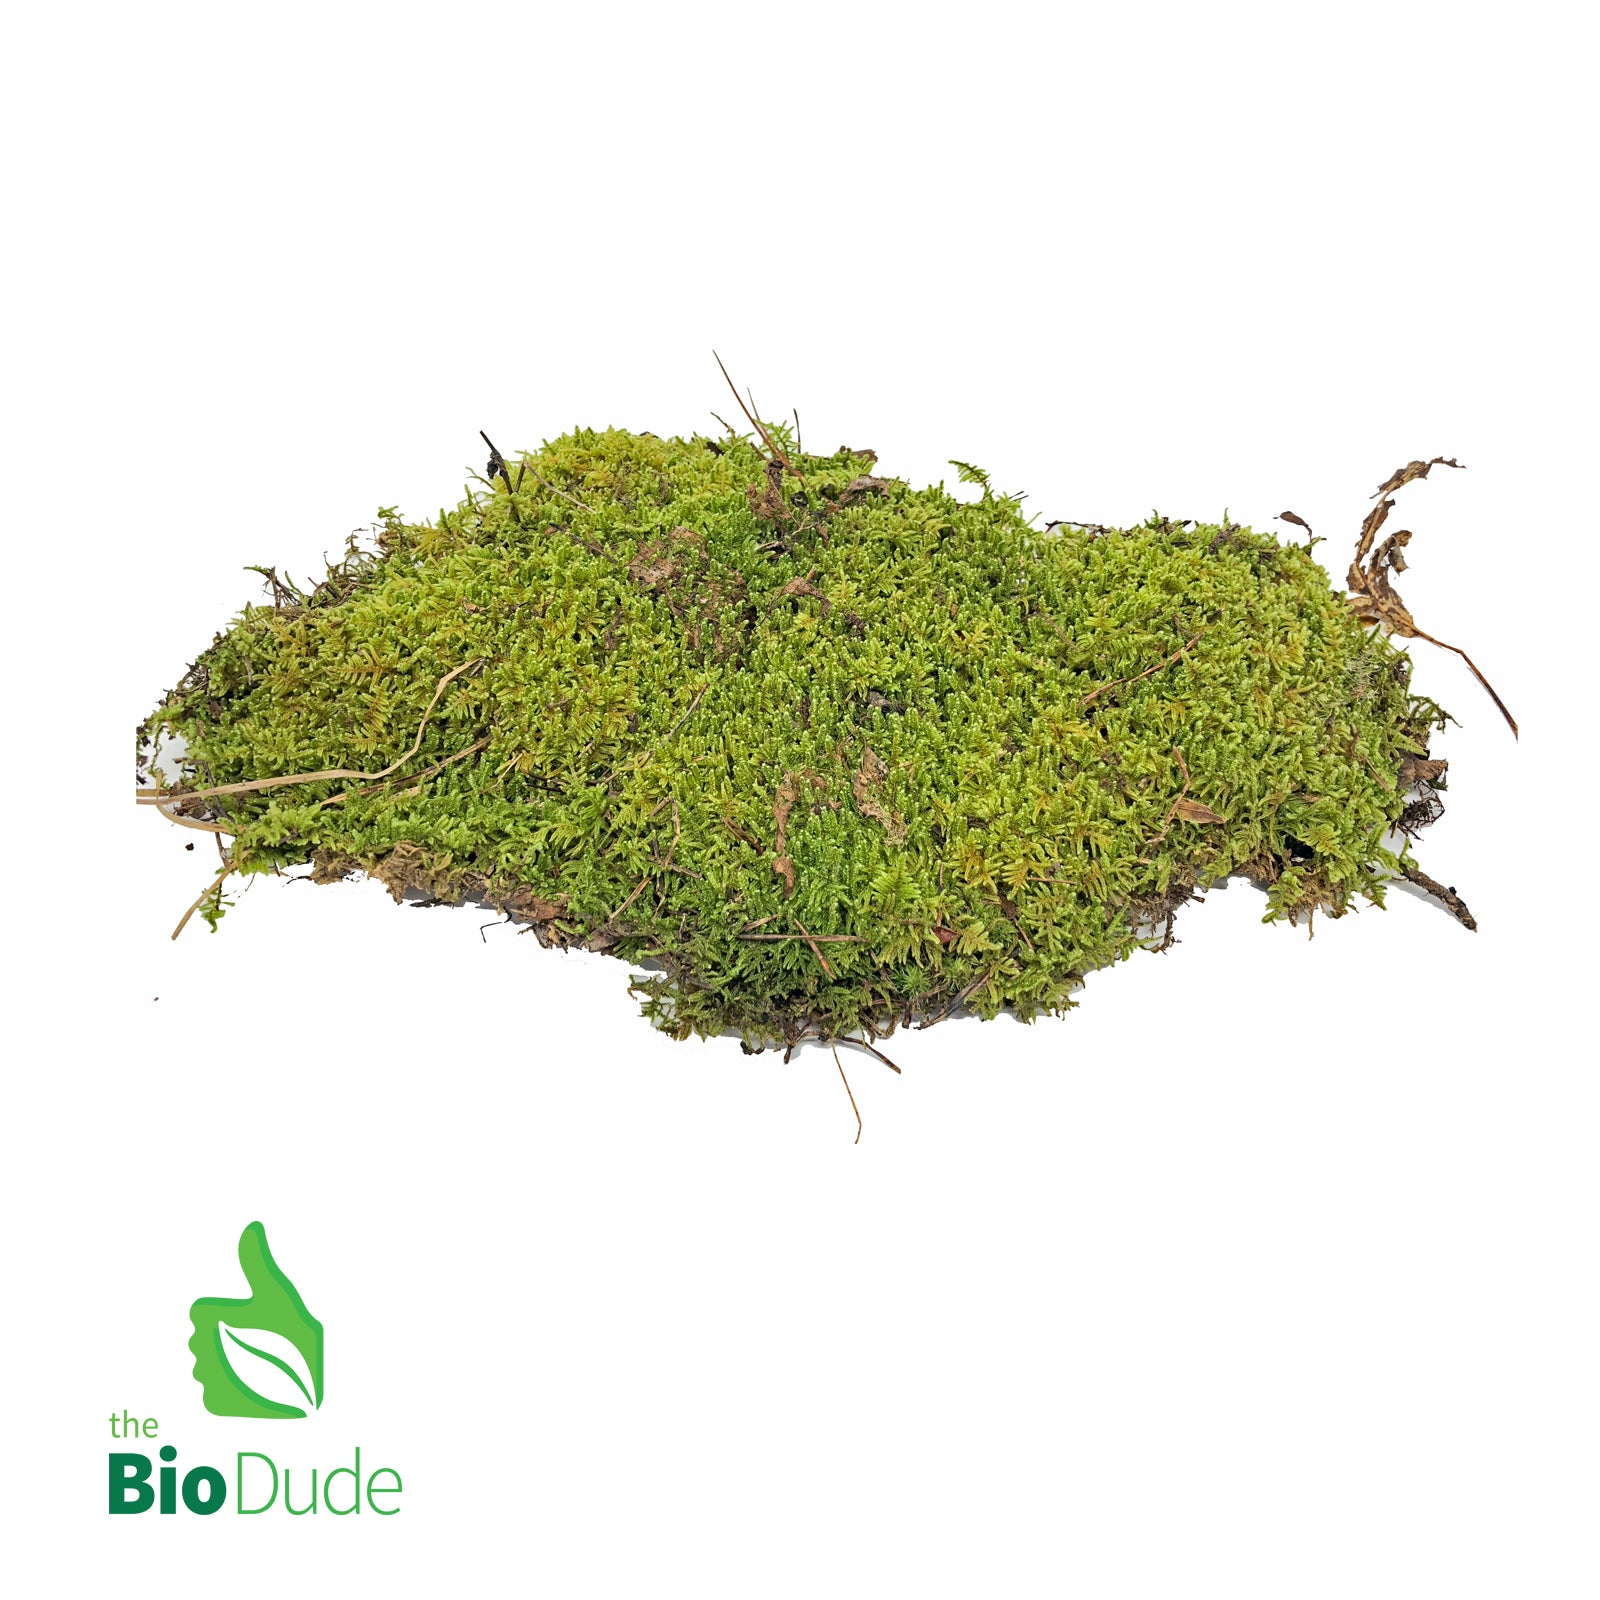 Shop For Live Mosses And Microplants At The Bio Dude Desktop Terrariums Lichen Micro Terrarium Plants Micro Terrariums Moss Moss Spore Mix Plant Tropical Plant